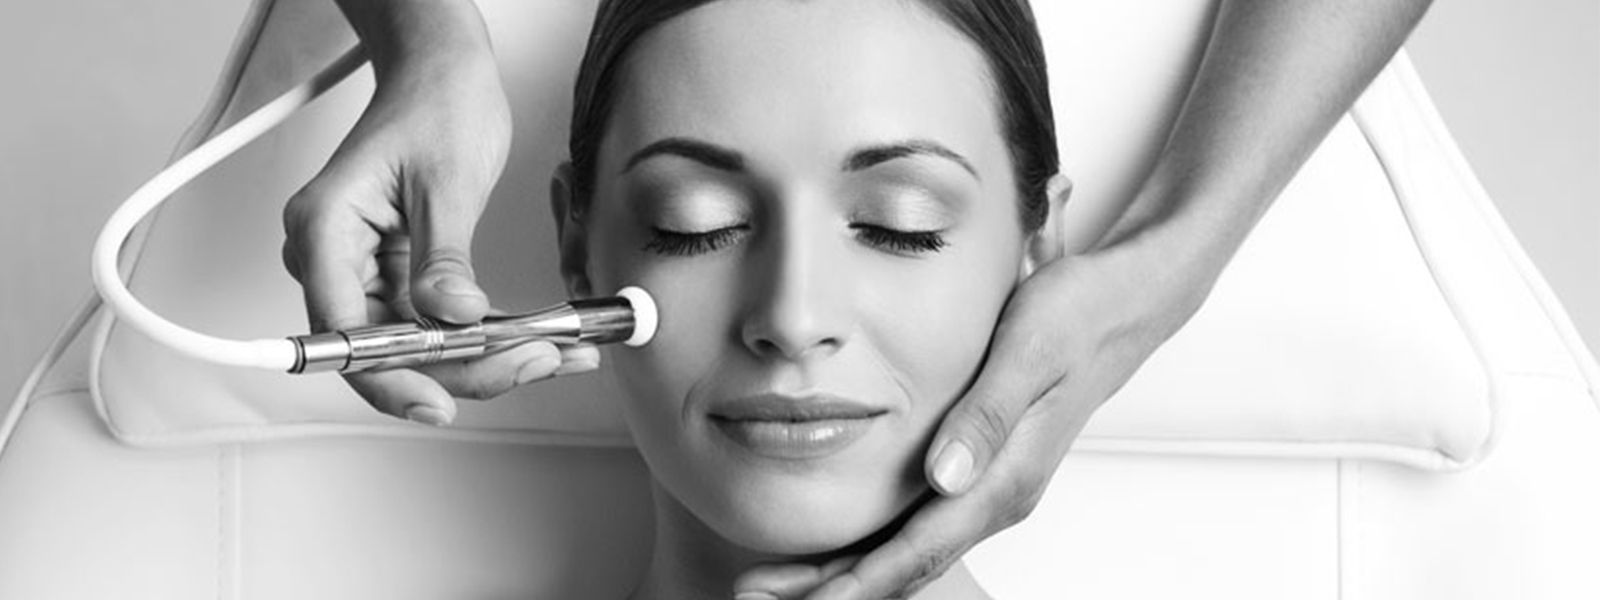 Best Microdermabrasion Spa Toronto